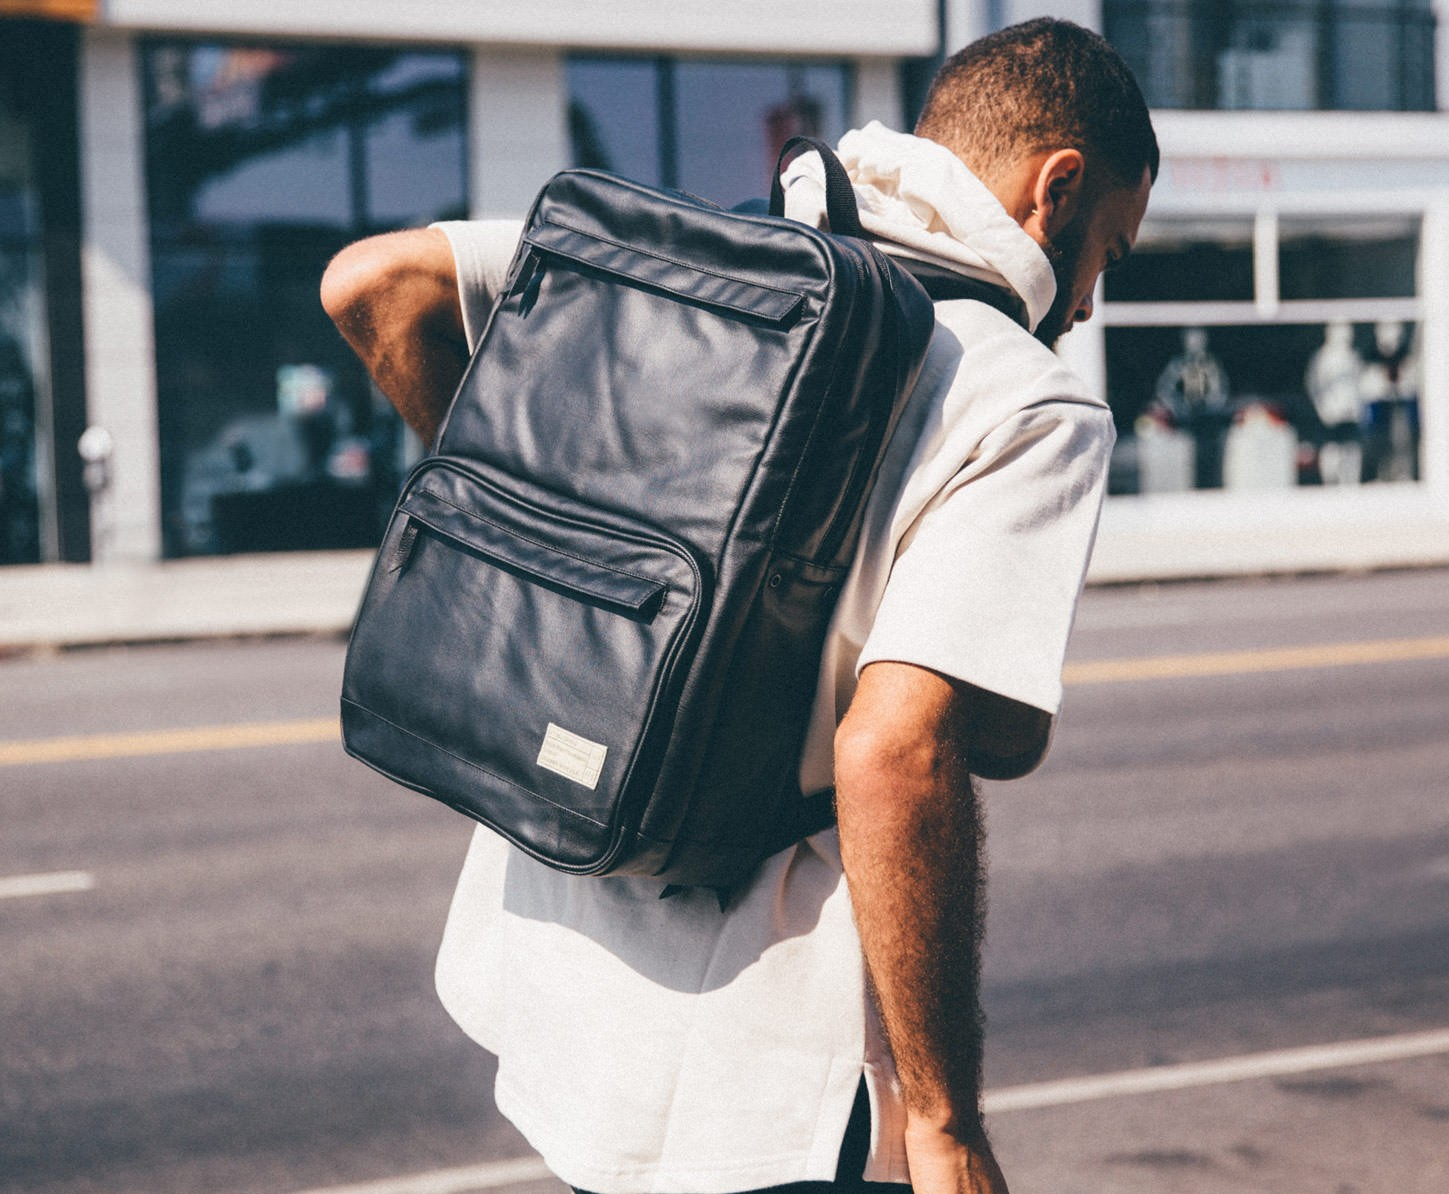 Hex Introduces The Sneaker Backpack The 5th Element Magazine